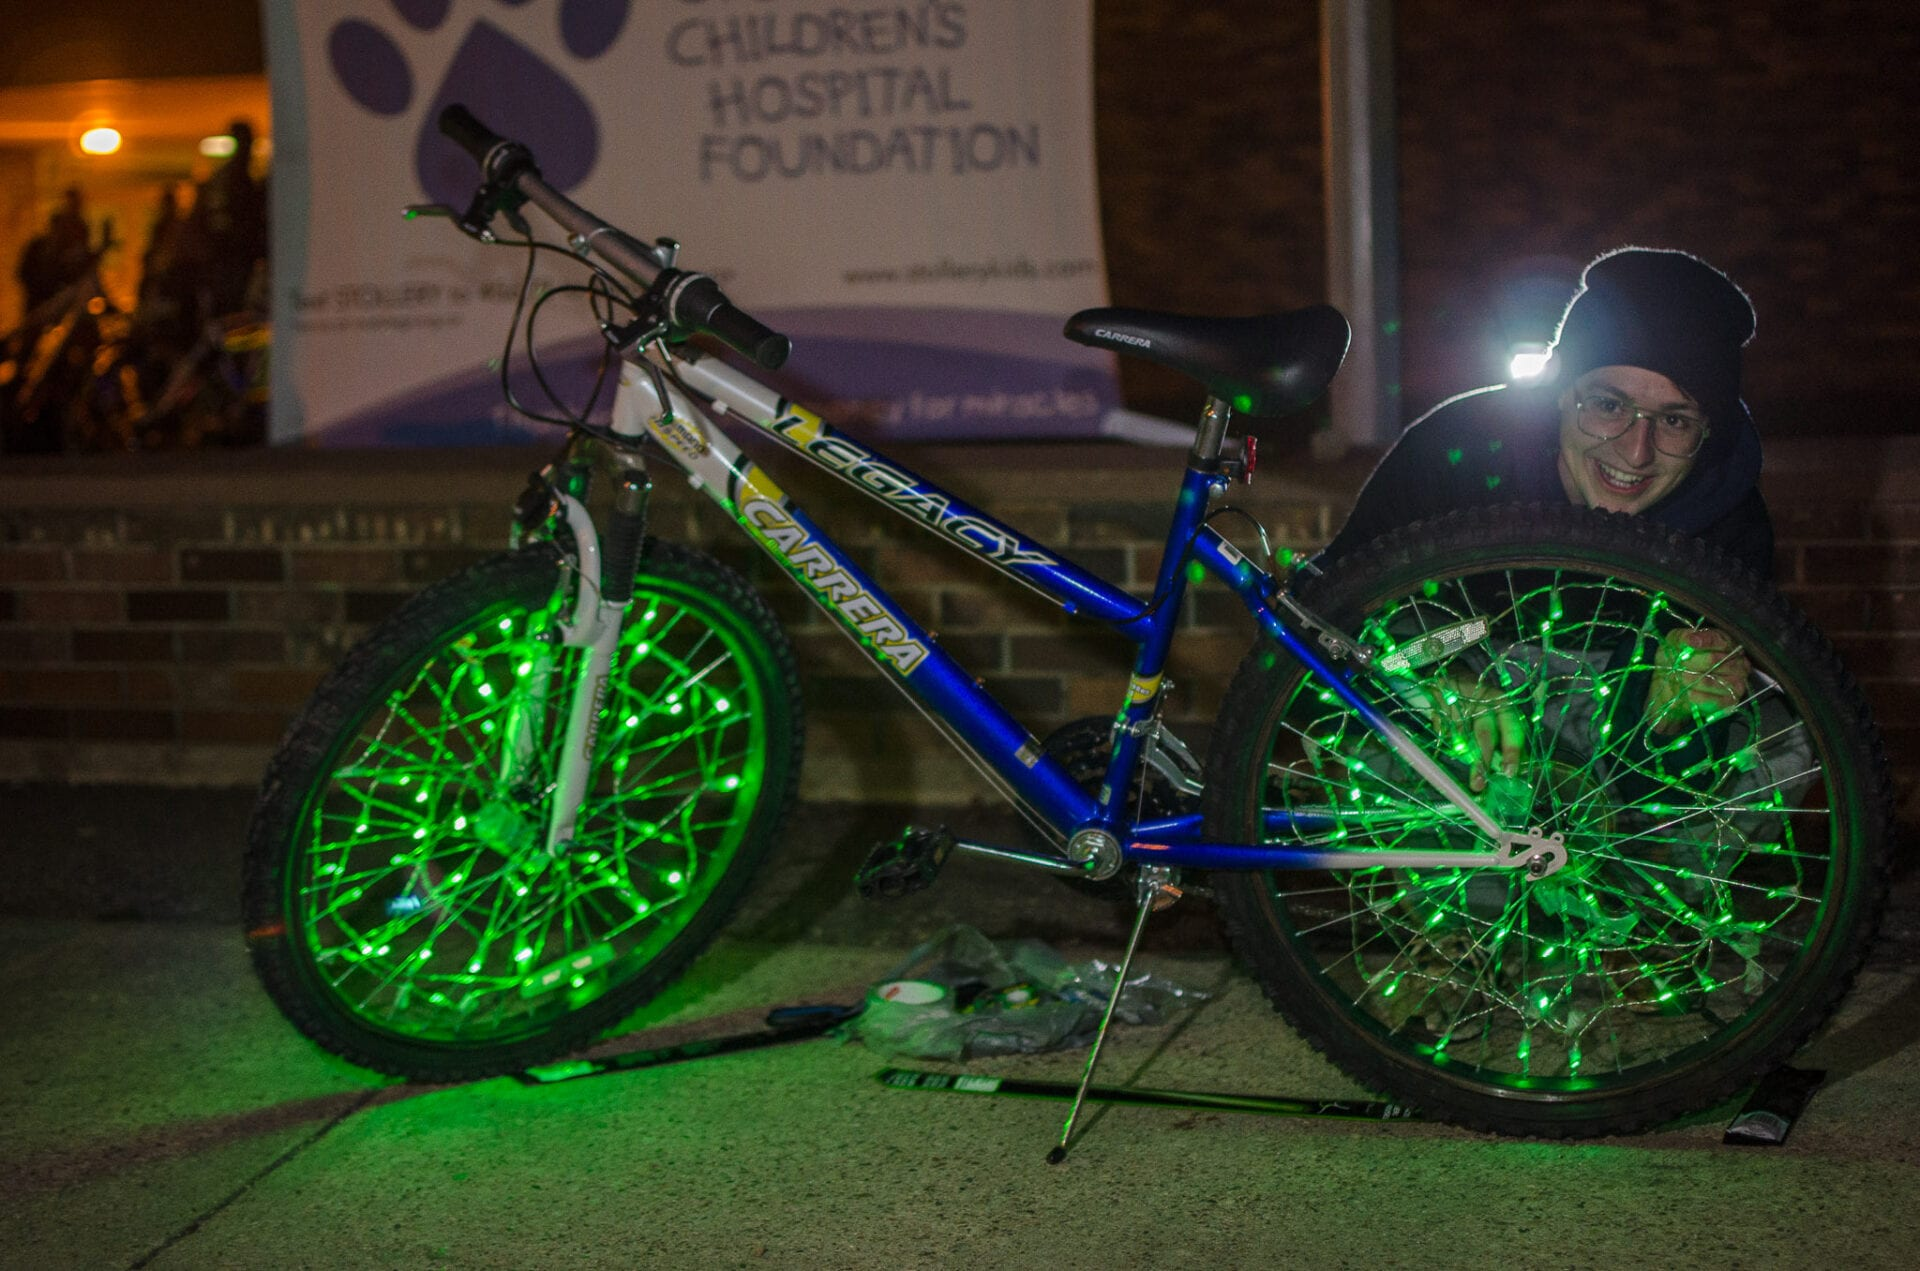 Children Stollery Hospital BikethruTheNight Fundraiser